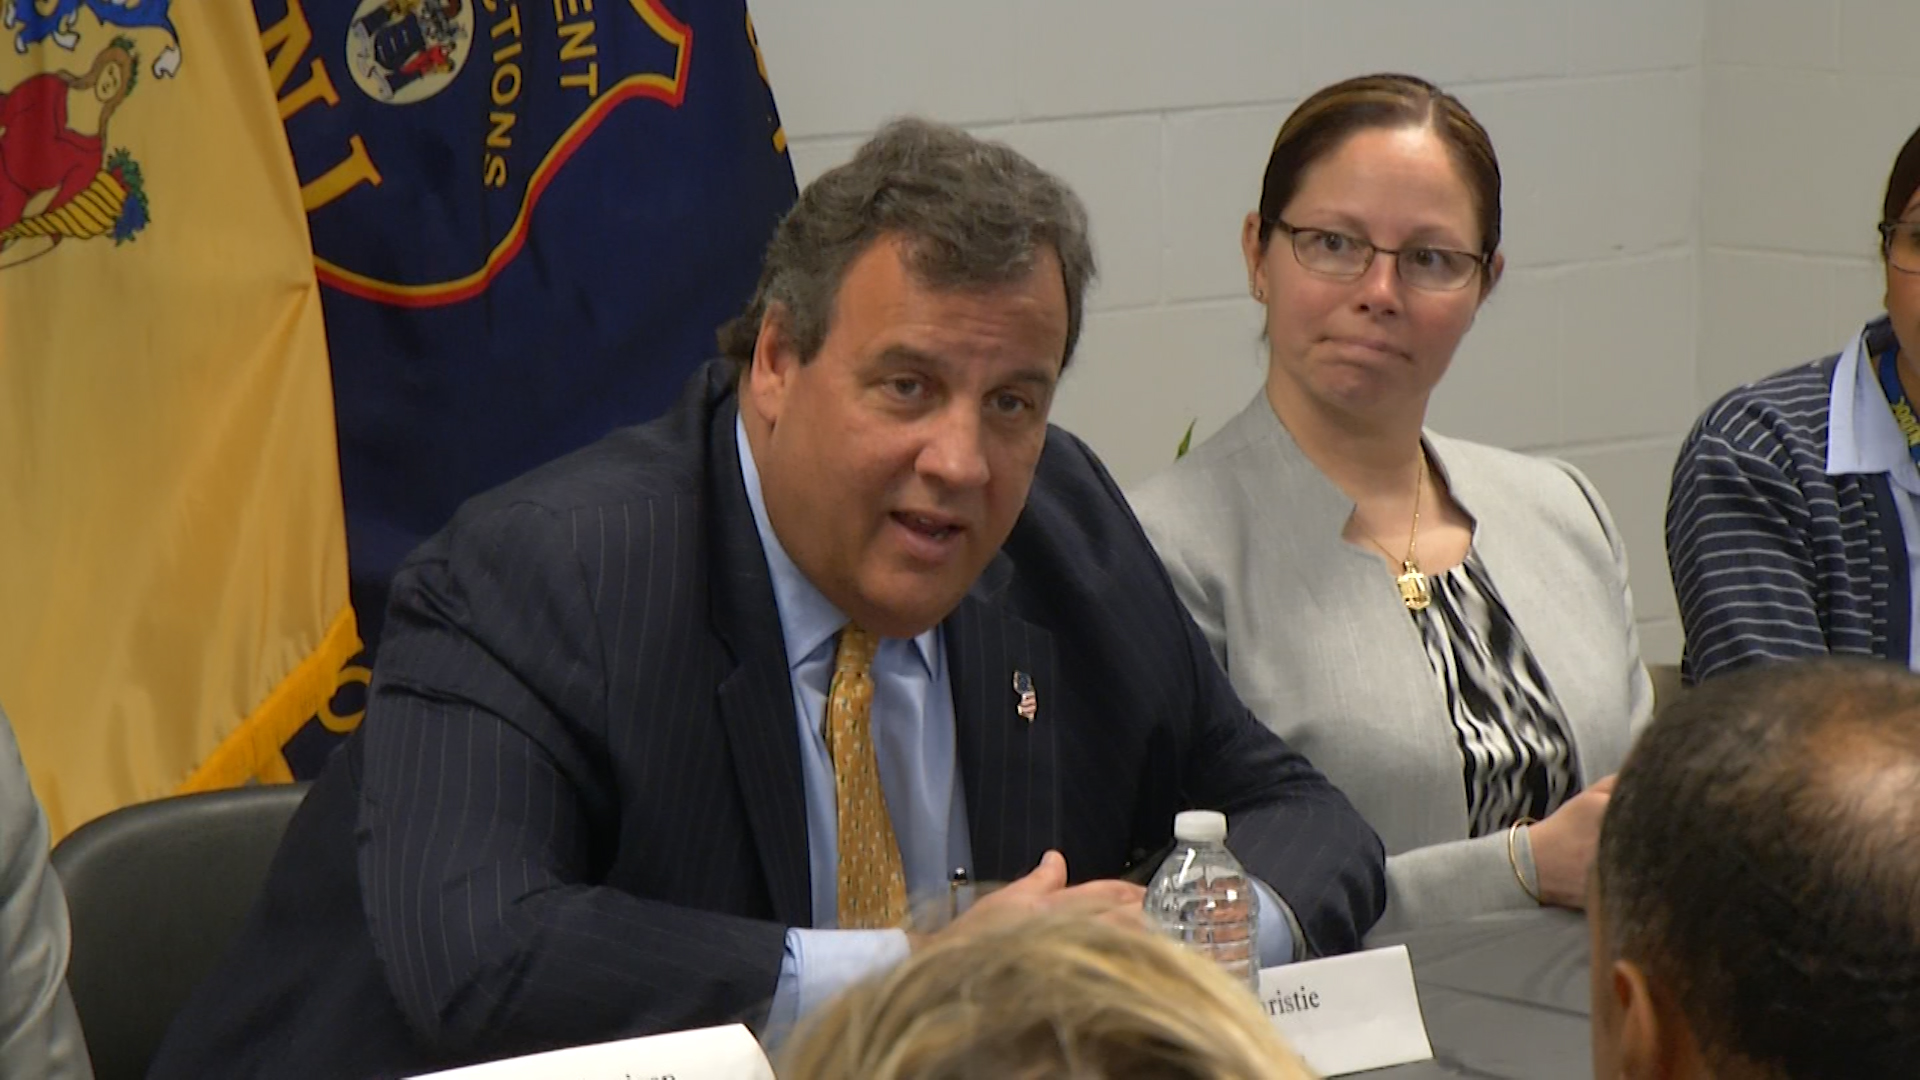 Christie Marks Re-Opening of Mid-State Correctional Facility as Treatment Center